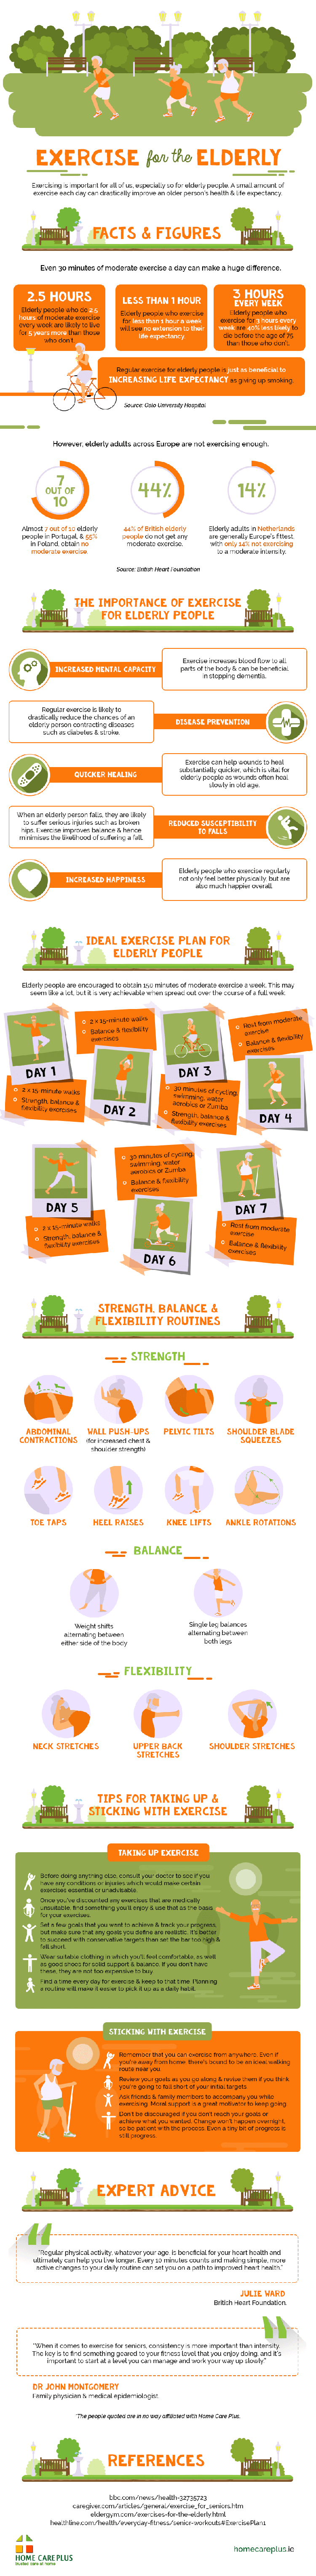 2.5 hours of exercise a week can add 5 years to an older person's life [Visual asset]